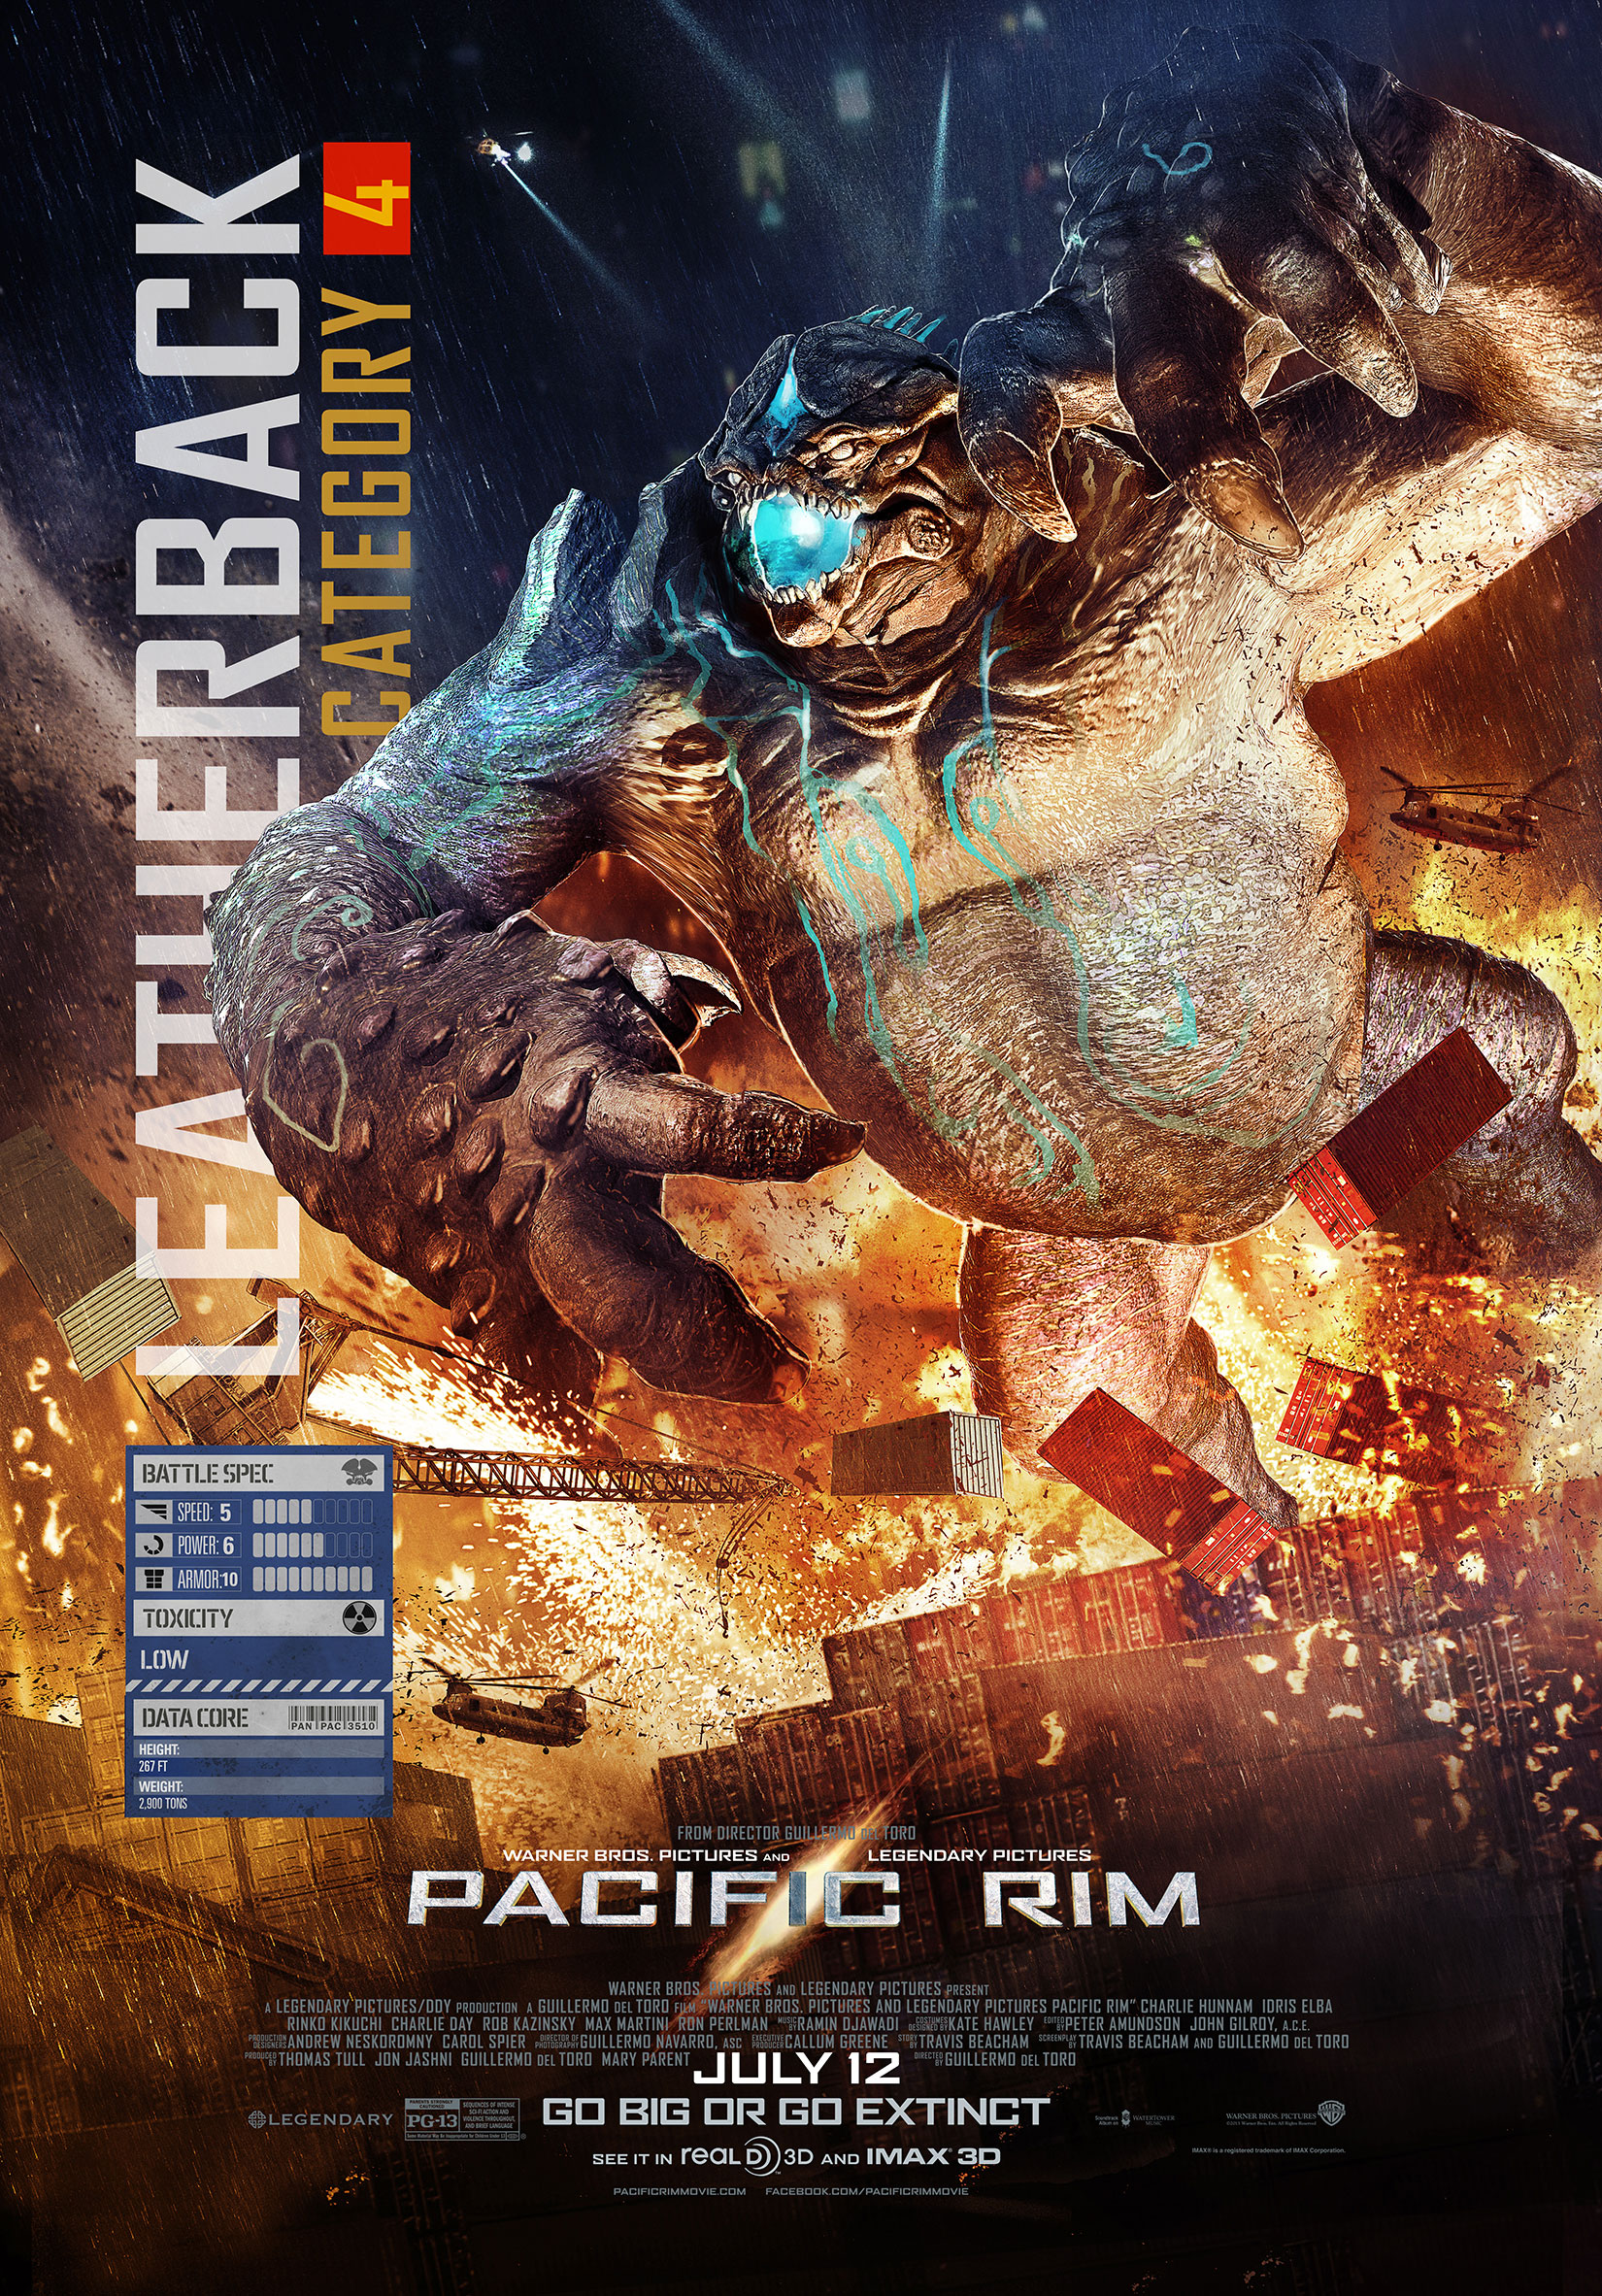 pacific rim images pacific rim poster hd wallpaper and